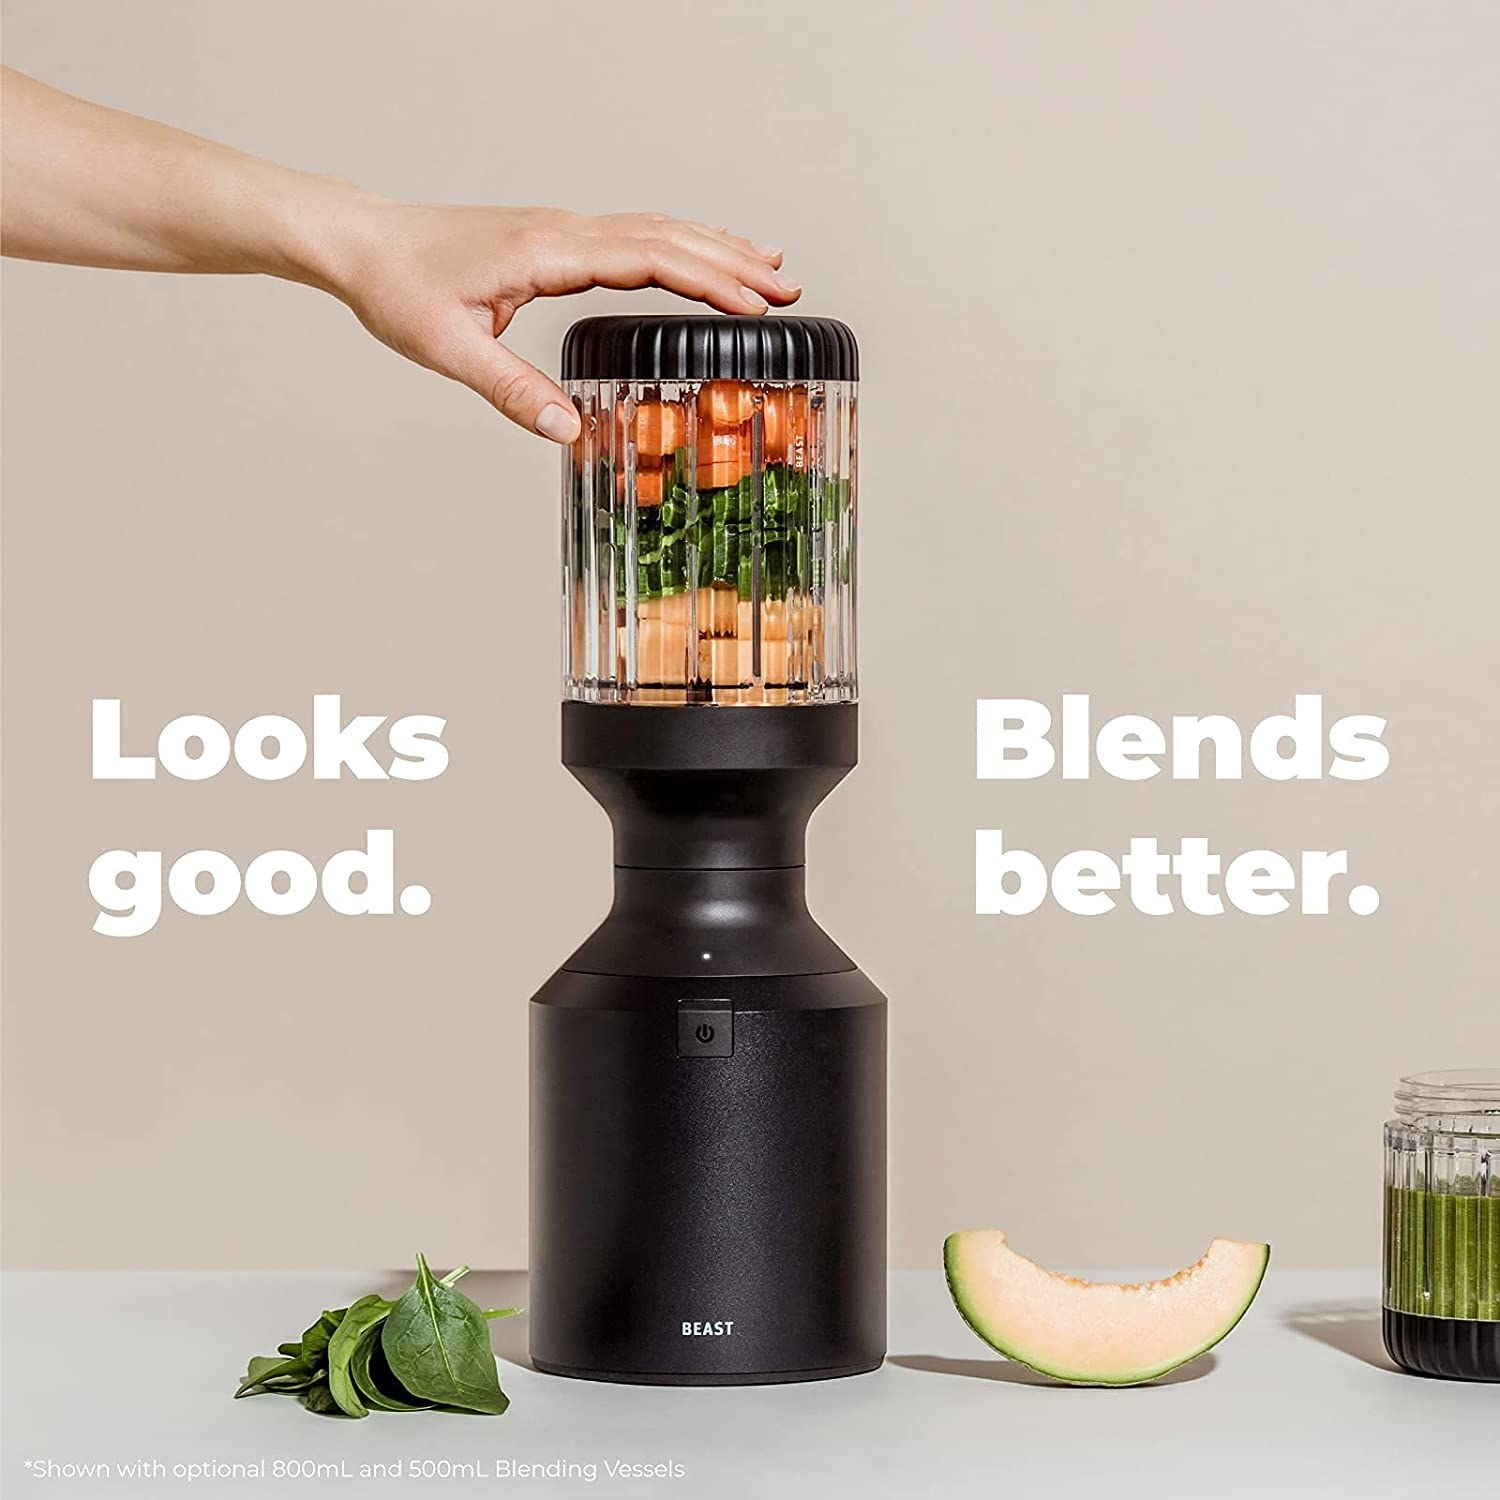 The black blender with text looks good, blends better